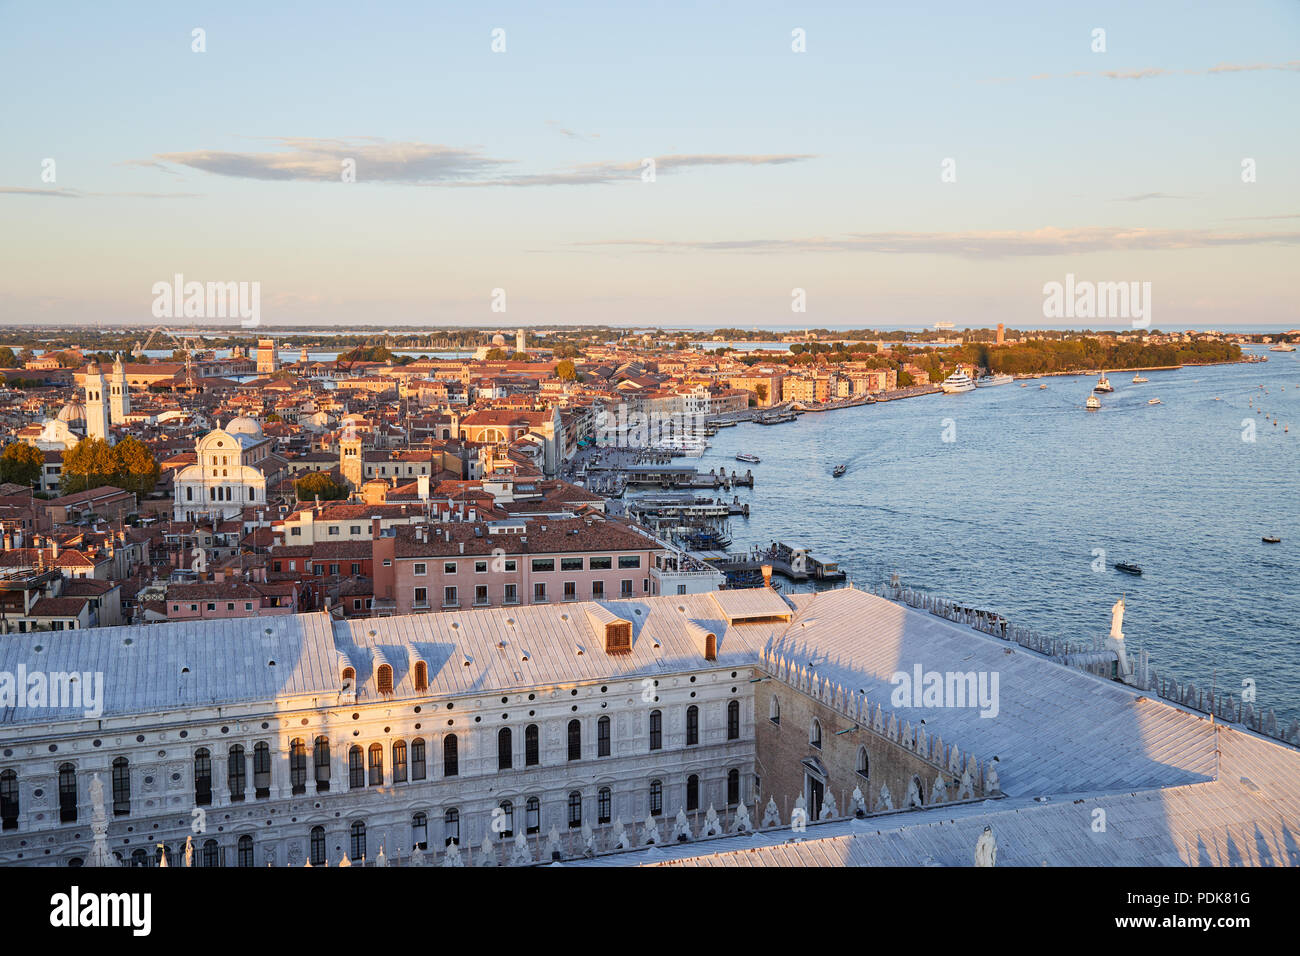 Aerial view of Venice before sunset with coast and rooftops, Italy - Stock Image